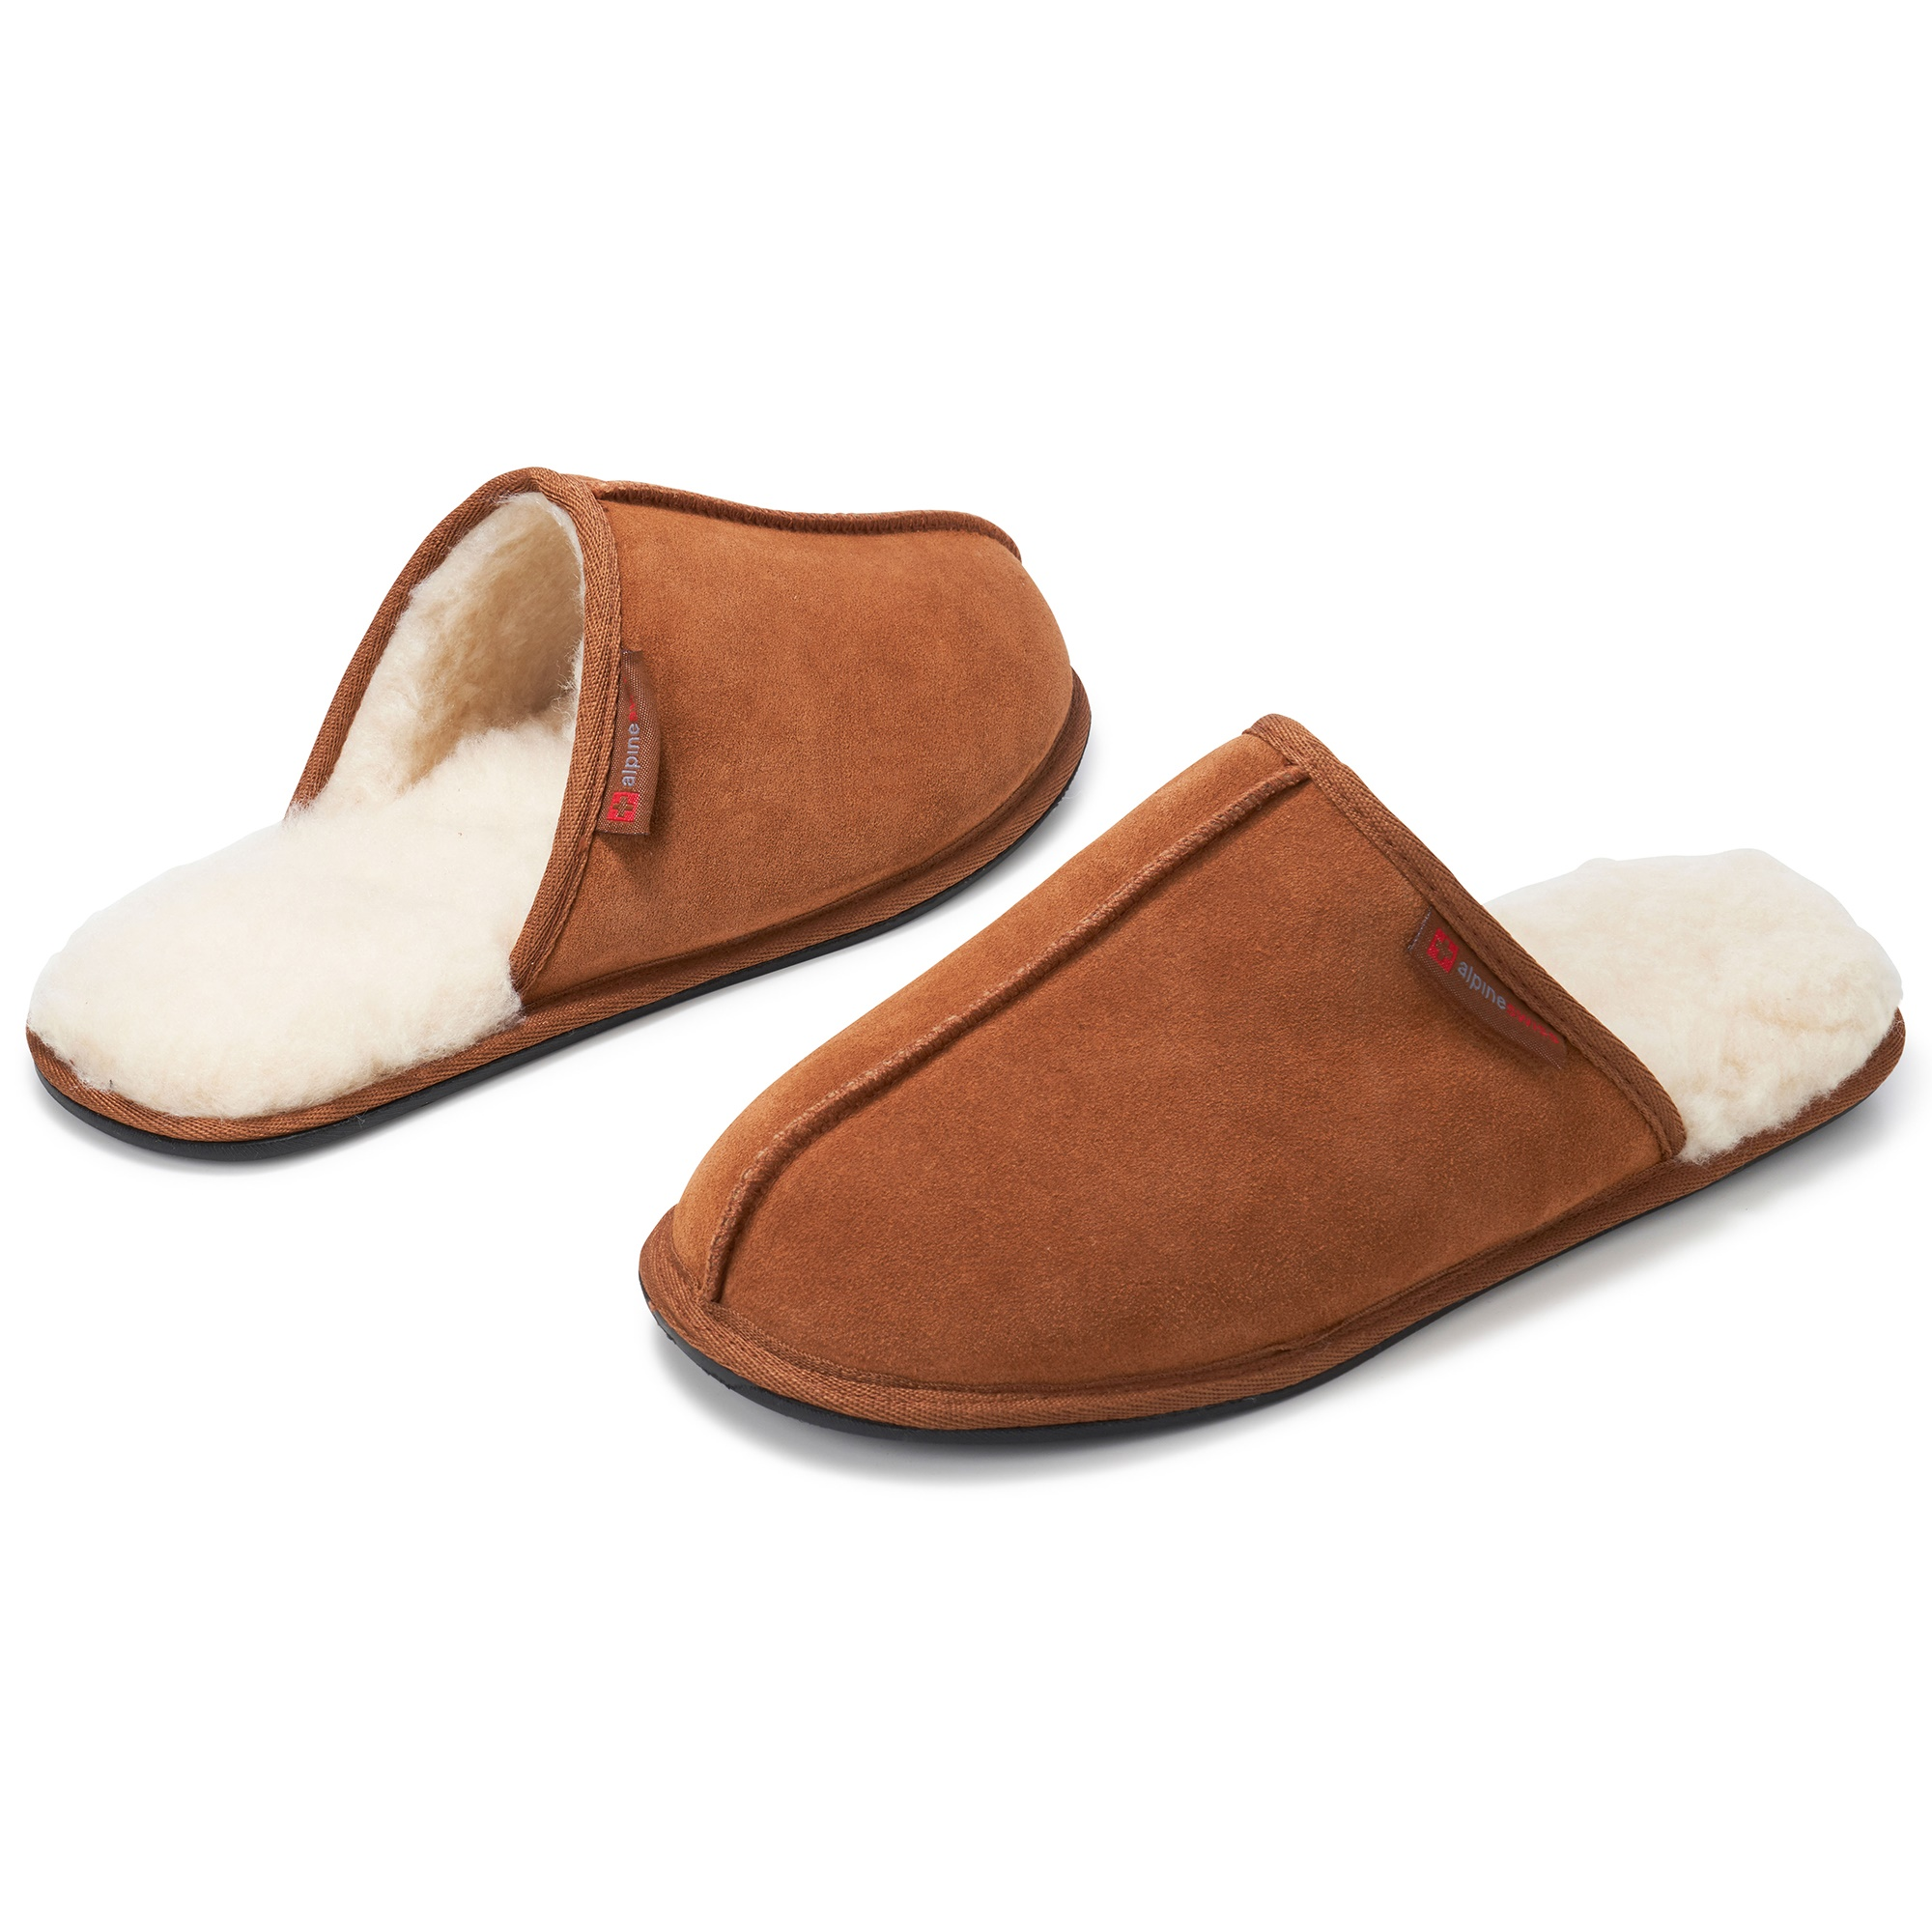 Alpine-Swiss-Mens-Suede-Memory-Foam-Scuff-Slippers-Comfort-Slip-On-House-Shoes thumbnail 20